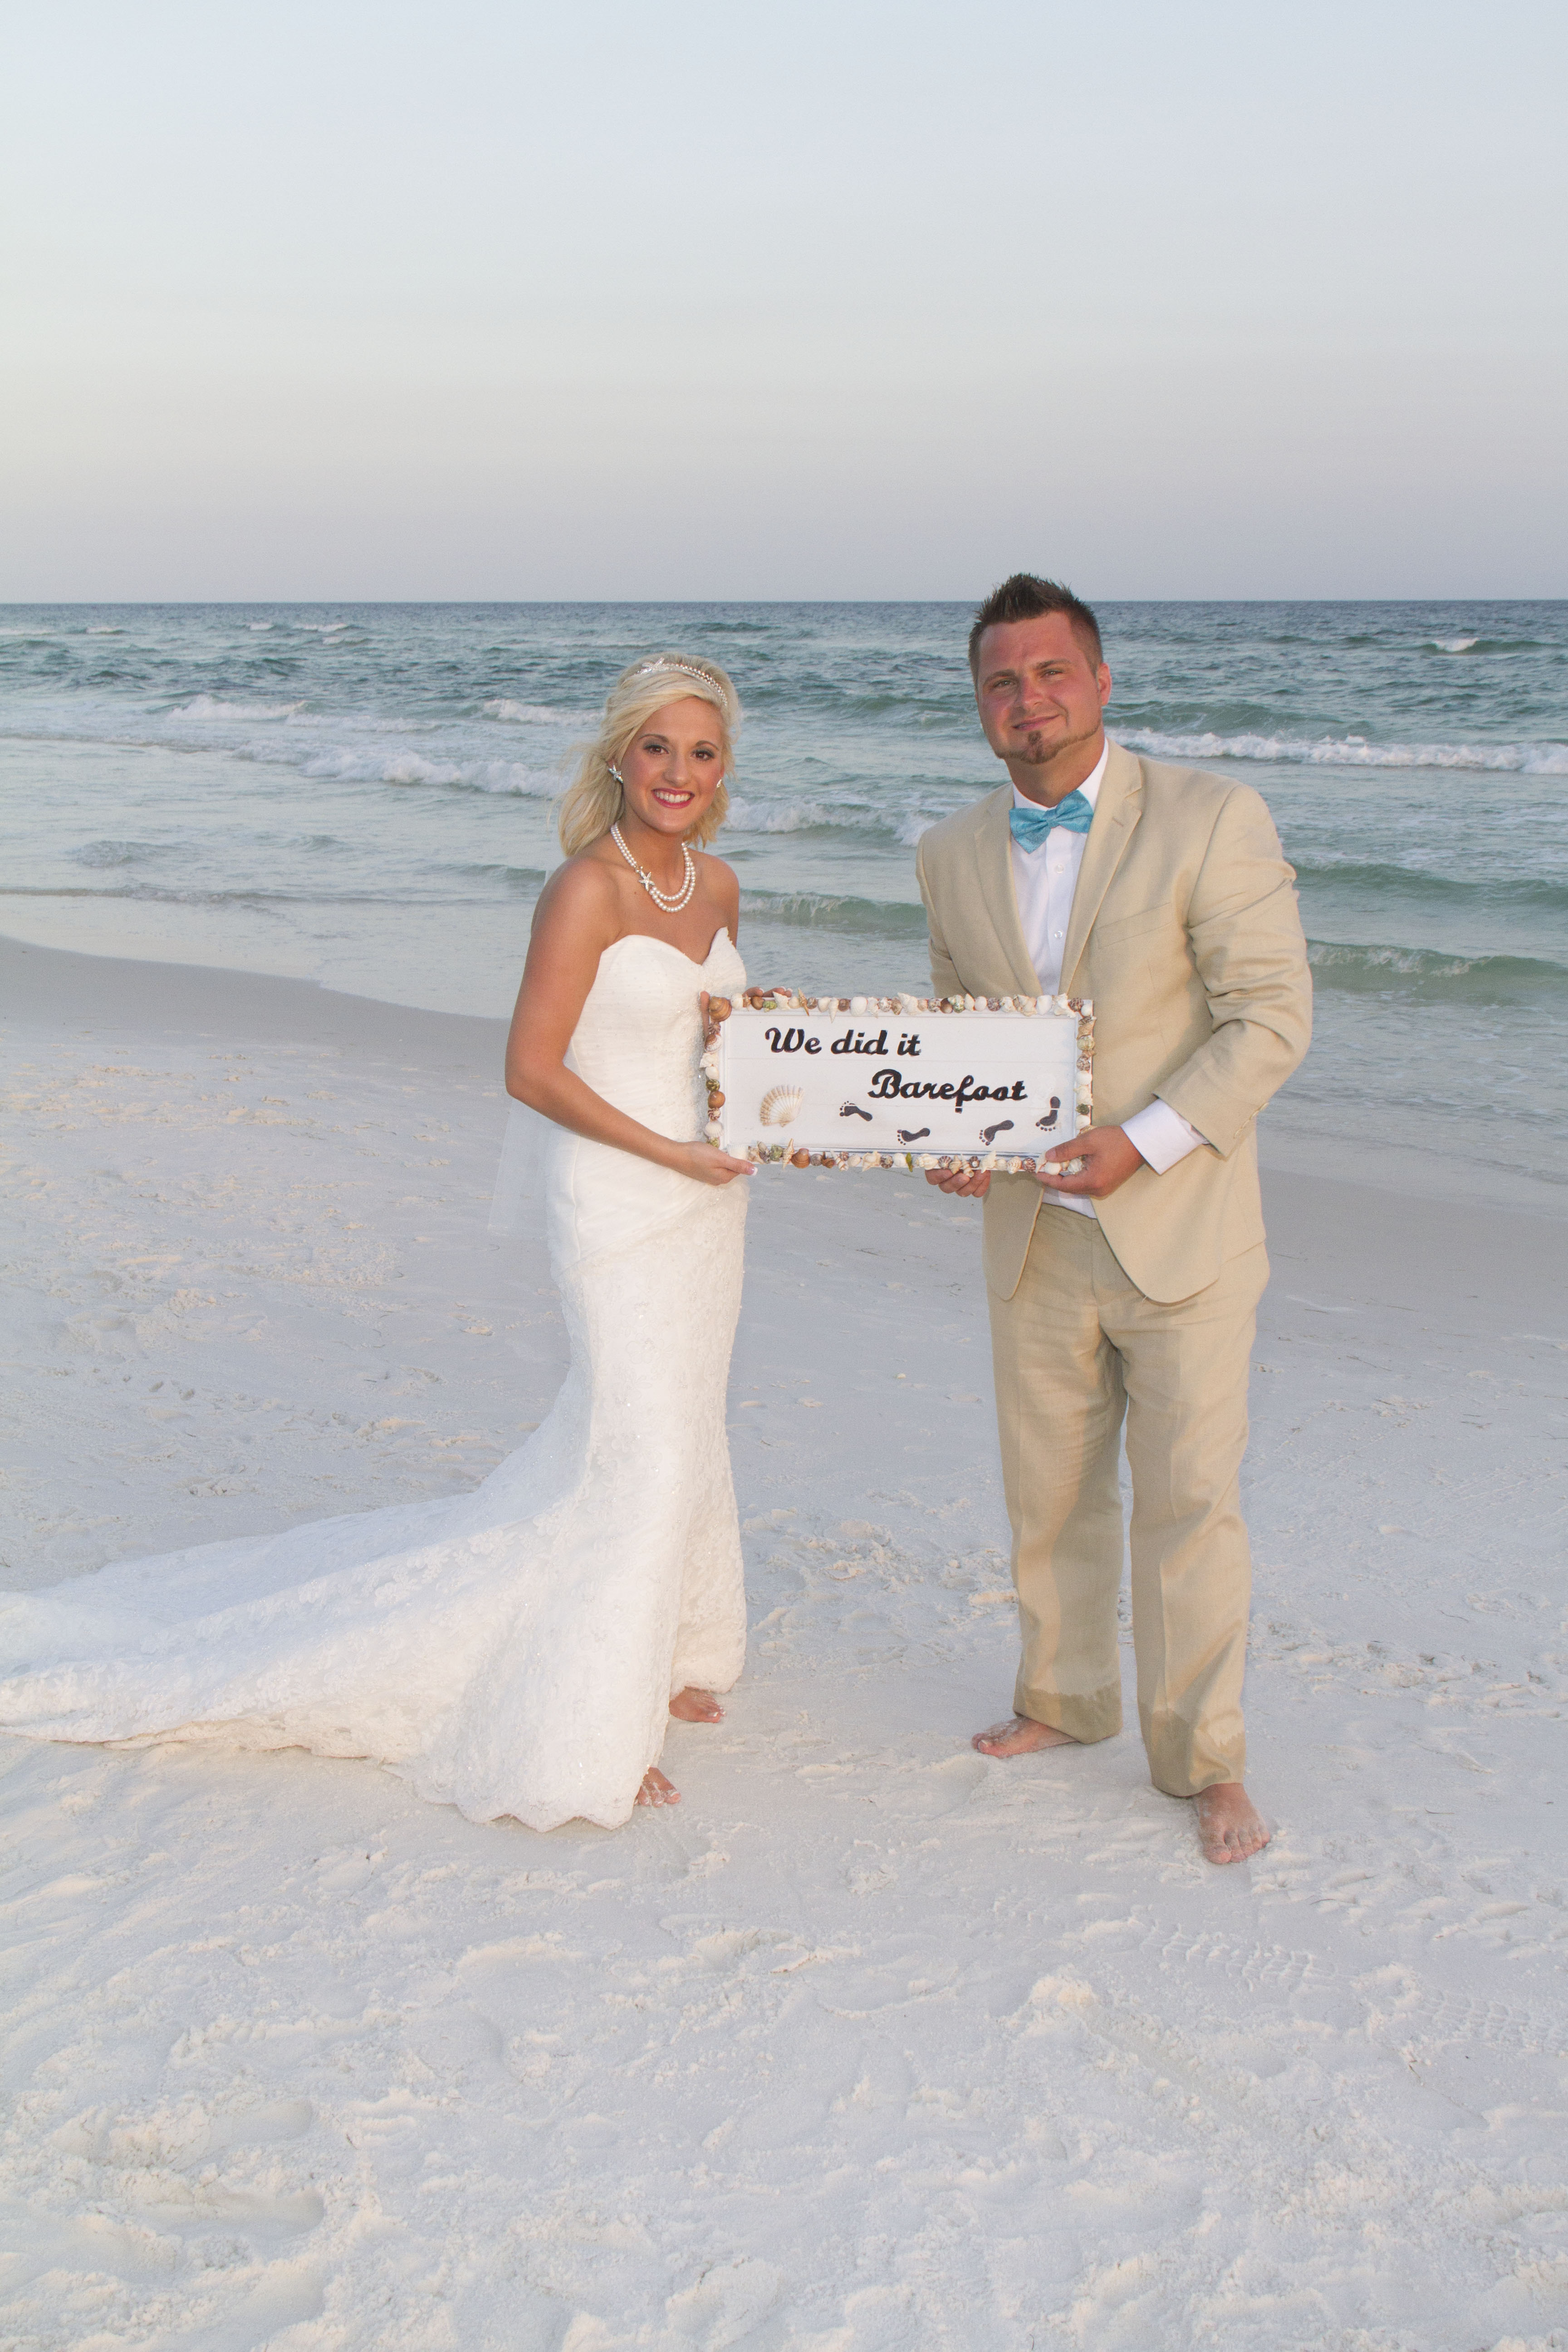 Barefoot Weddings® – Barefoot Weddings- Beach Weddings in Florida ...